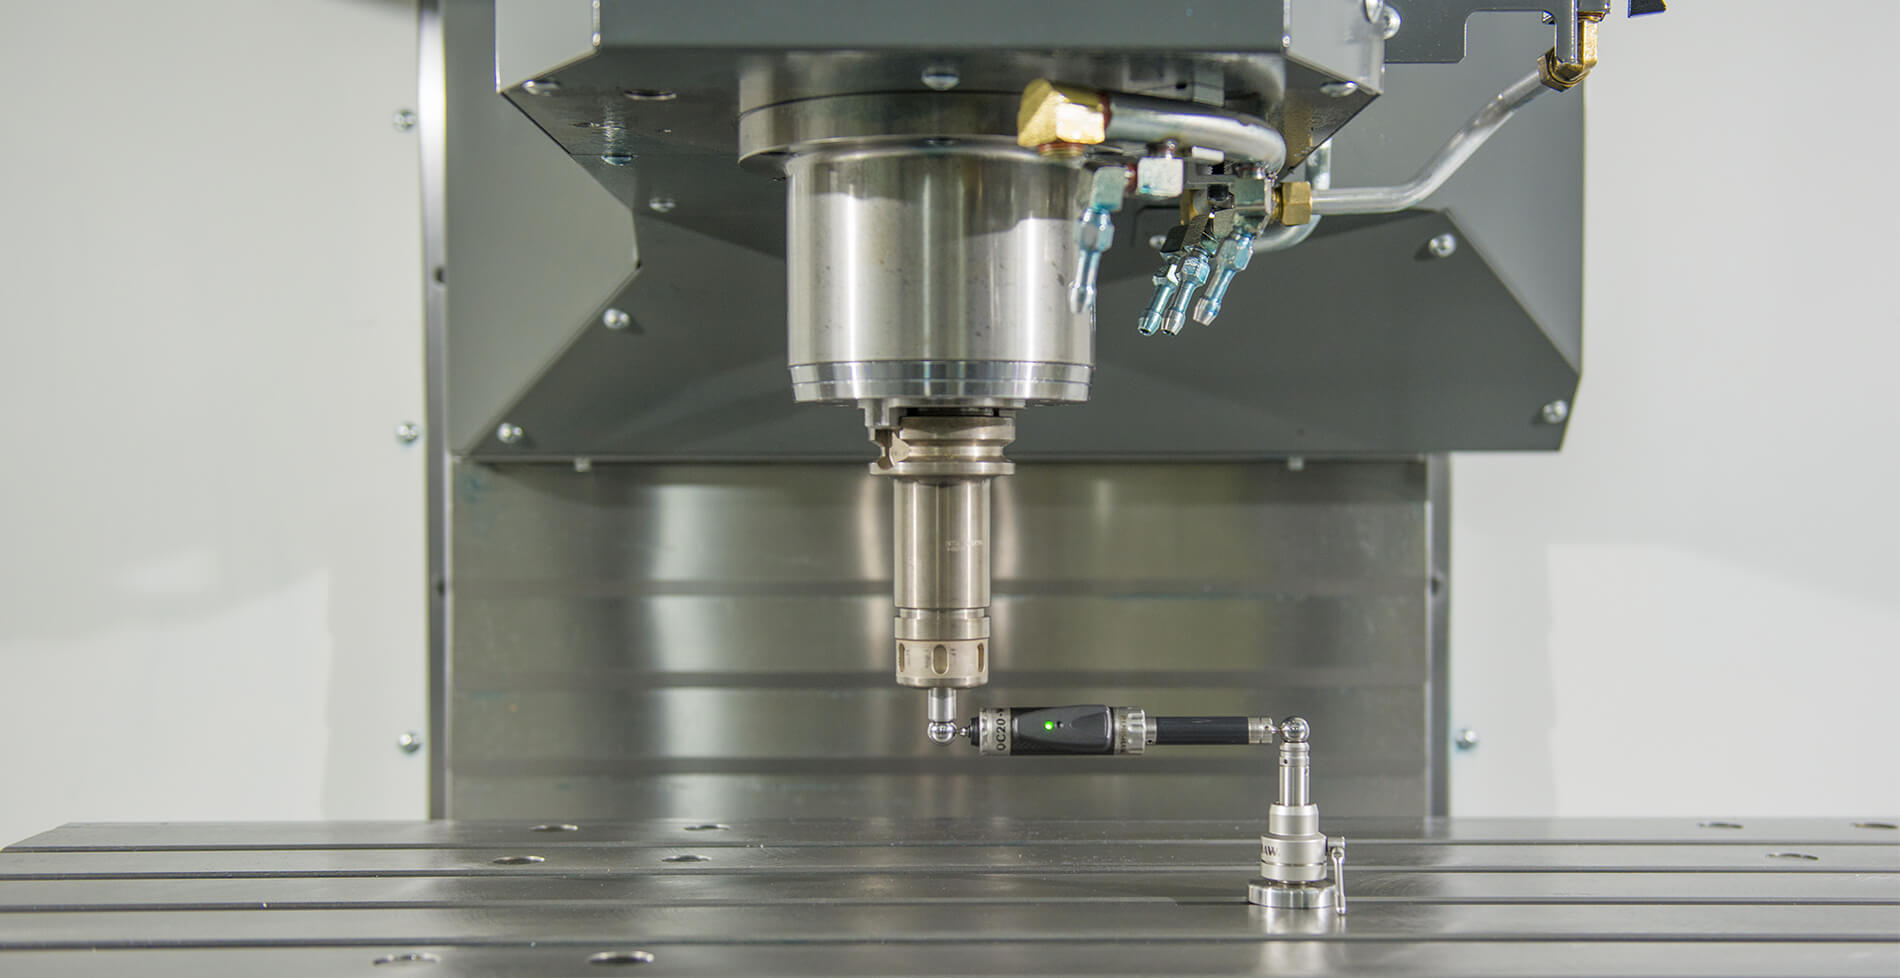 Renishaw XR20 ROTARY AXIS LASER CALIBRATION SYSTEM